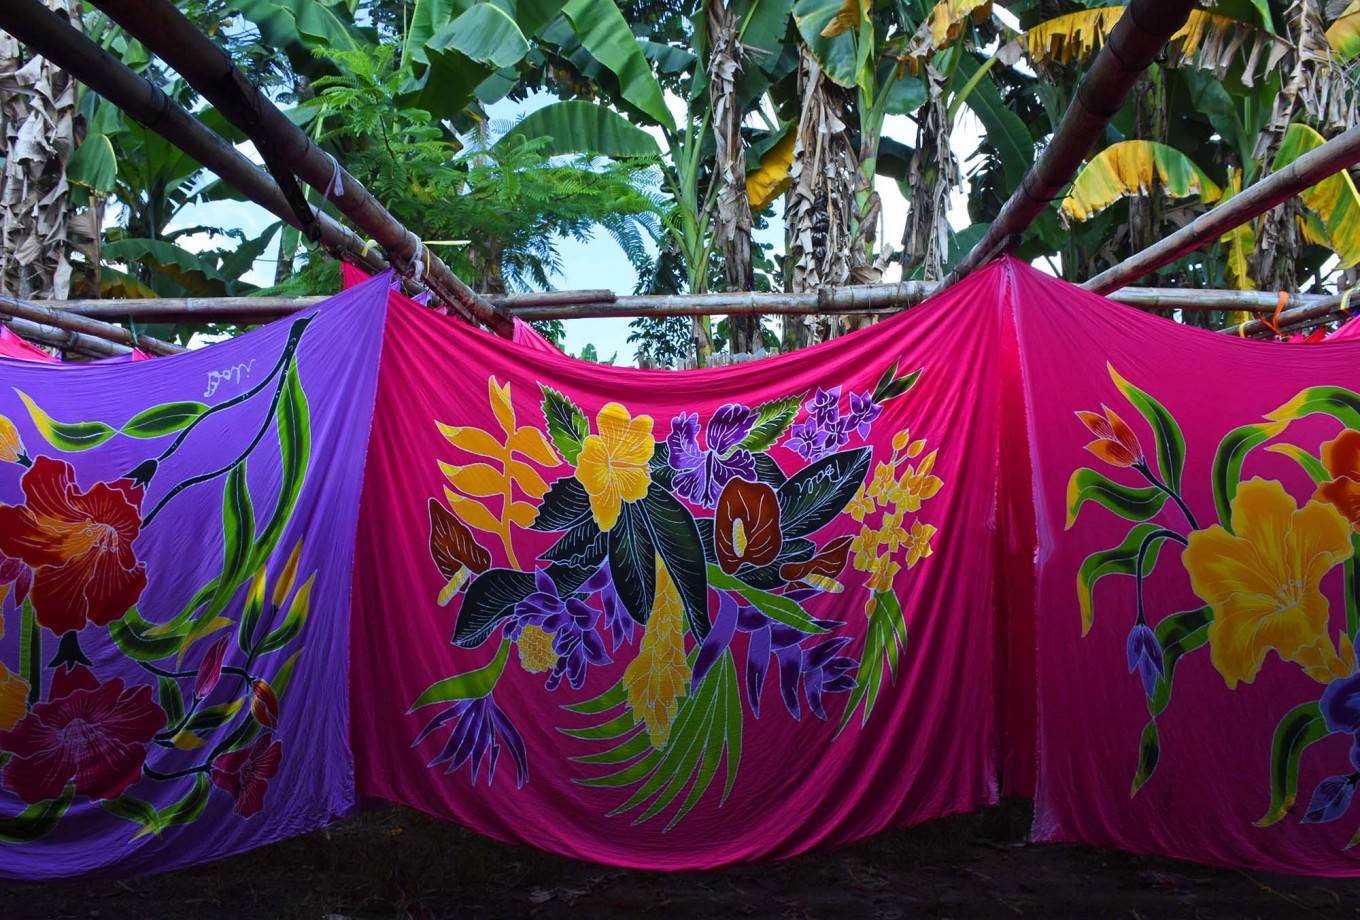 In the yard of the Batik Satrio workshop in Senepo Rejo village, beach sarongs featuring colorful patterns of plants, flowers and animals are hung up to dry naturally after dyeing. JP/Aman Rochman